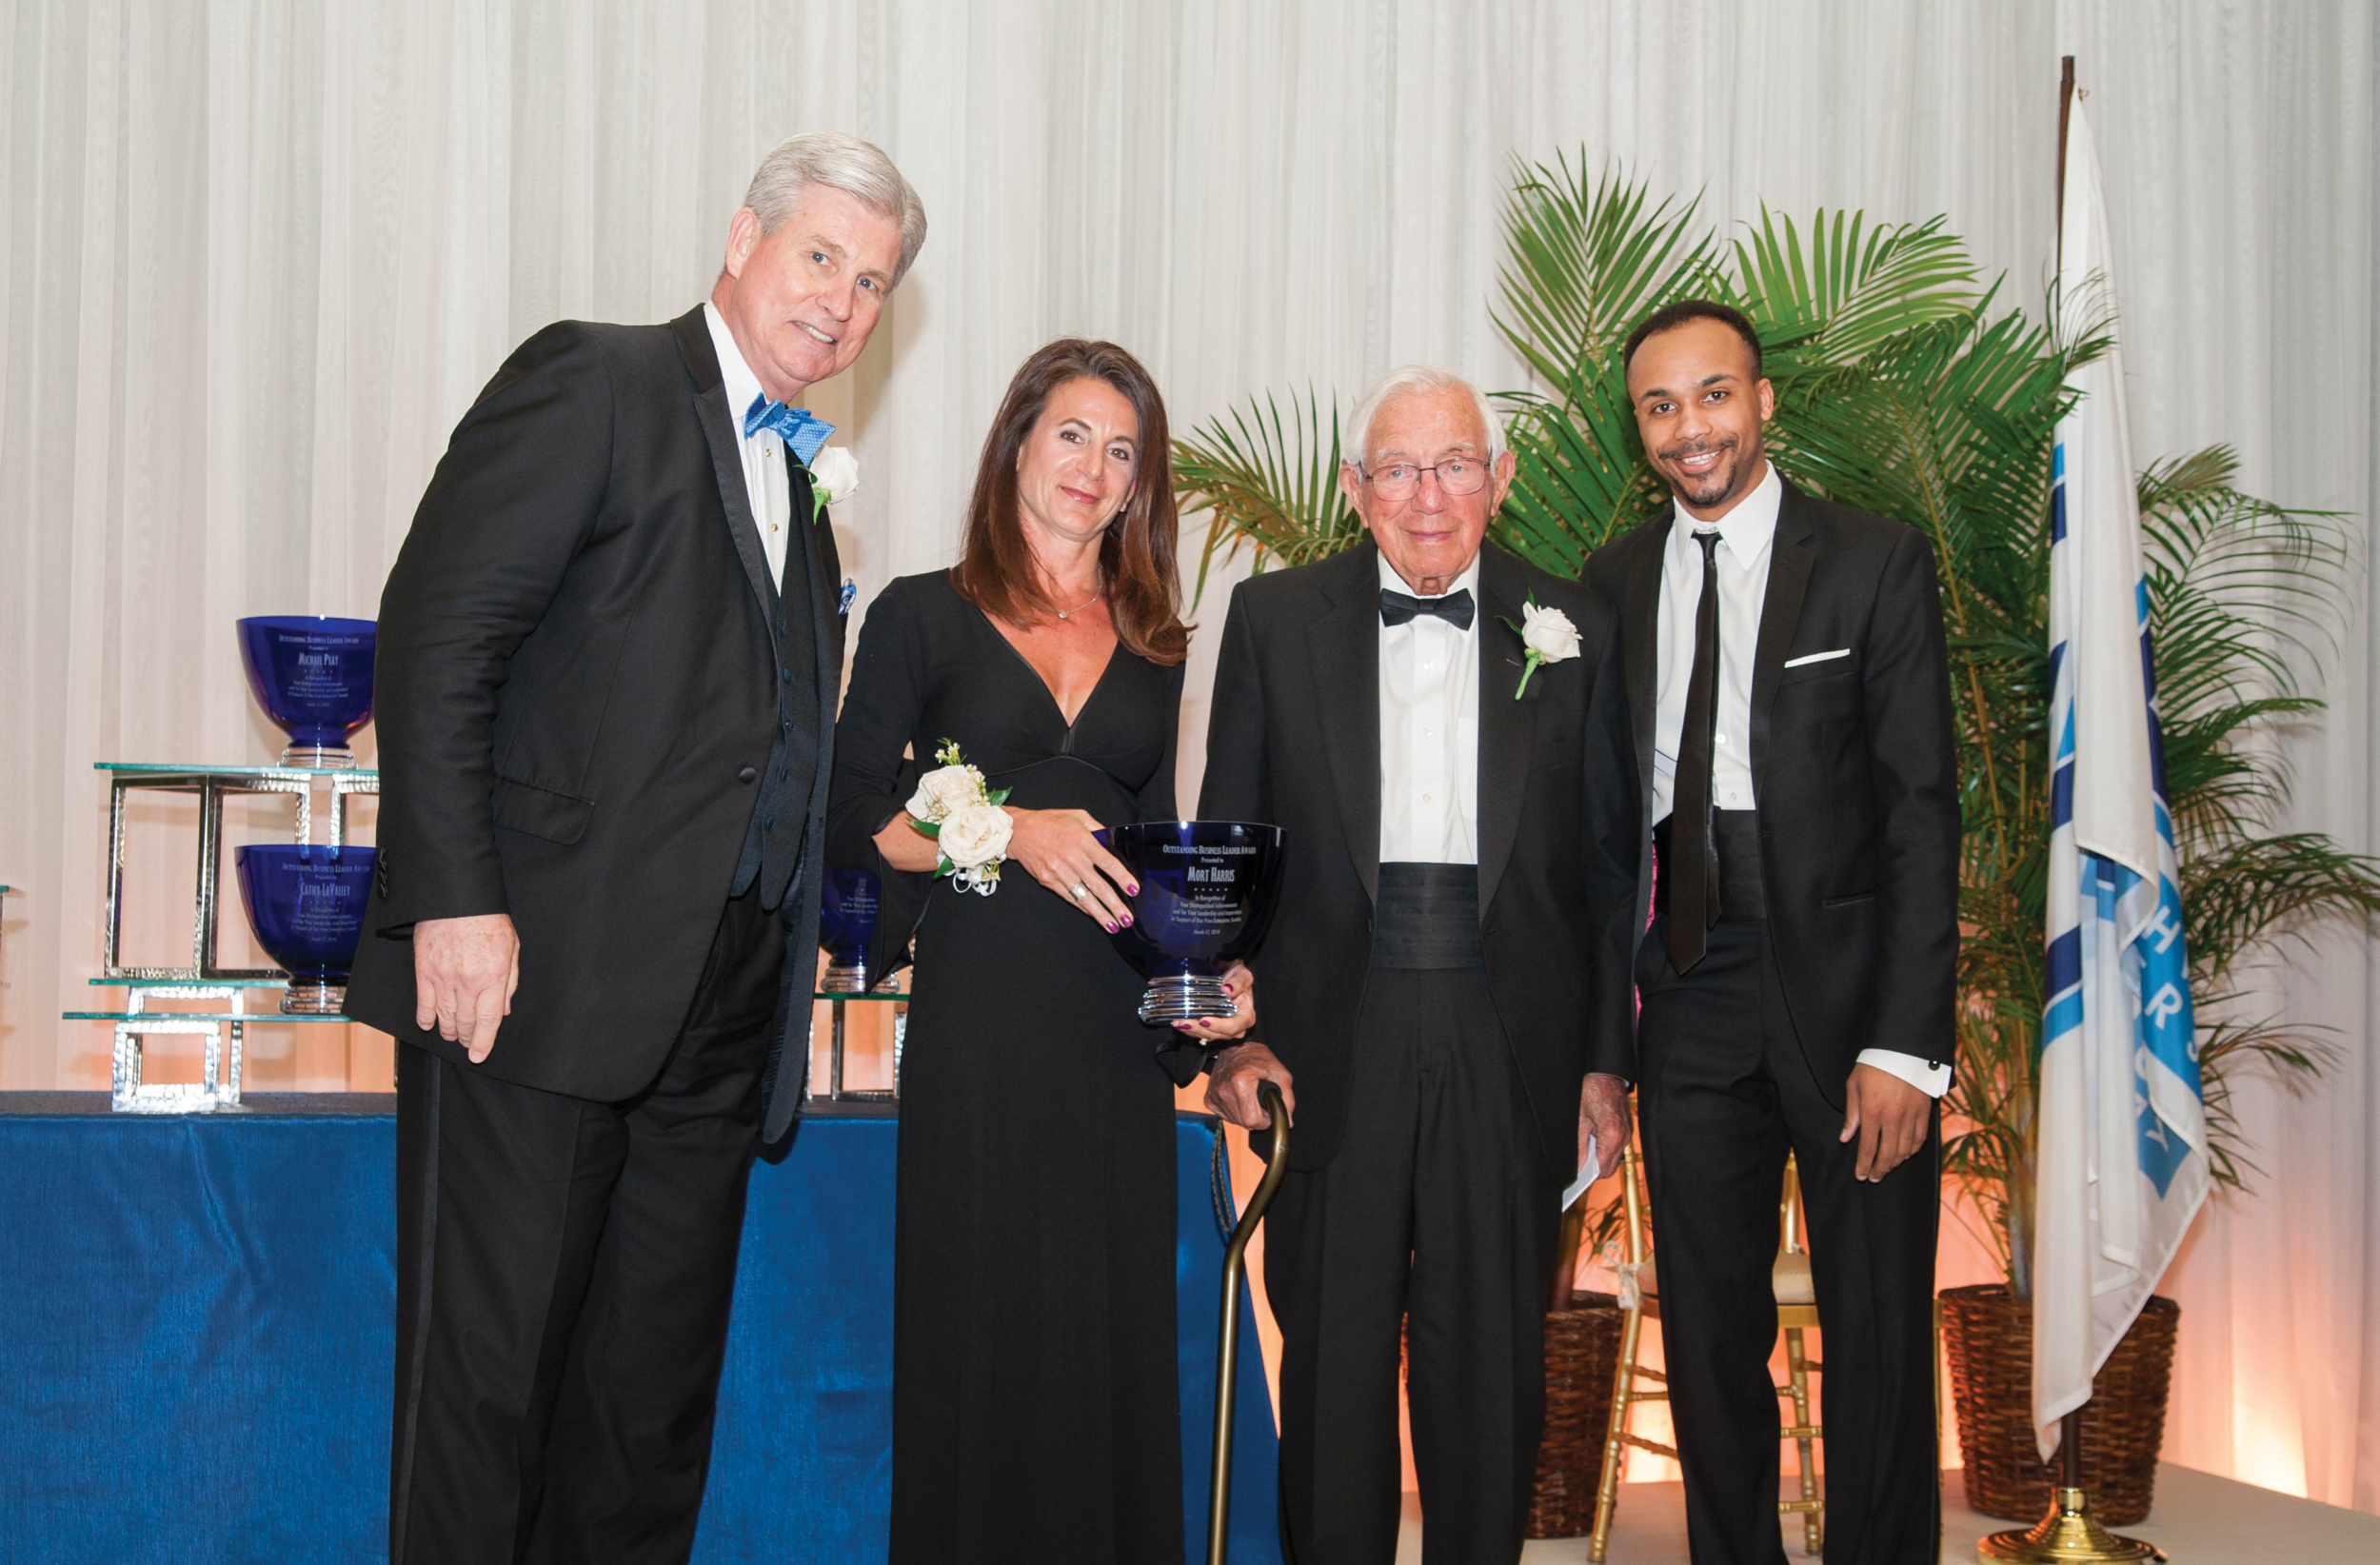 Northwood President Keith Pretty, NU Board Trustee Dr. Jennifer Panning, 2018 Outstanding Business Leaders recipient Mort Harris, and Bretzlaff Foundation Scholarship winner Christopher Grant attend the 2018 Outstanding Business Leader Awards Gala.